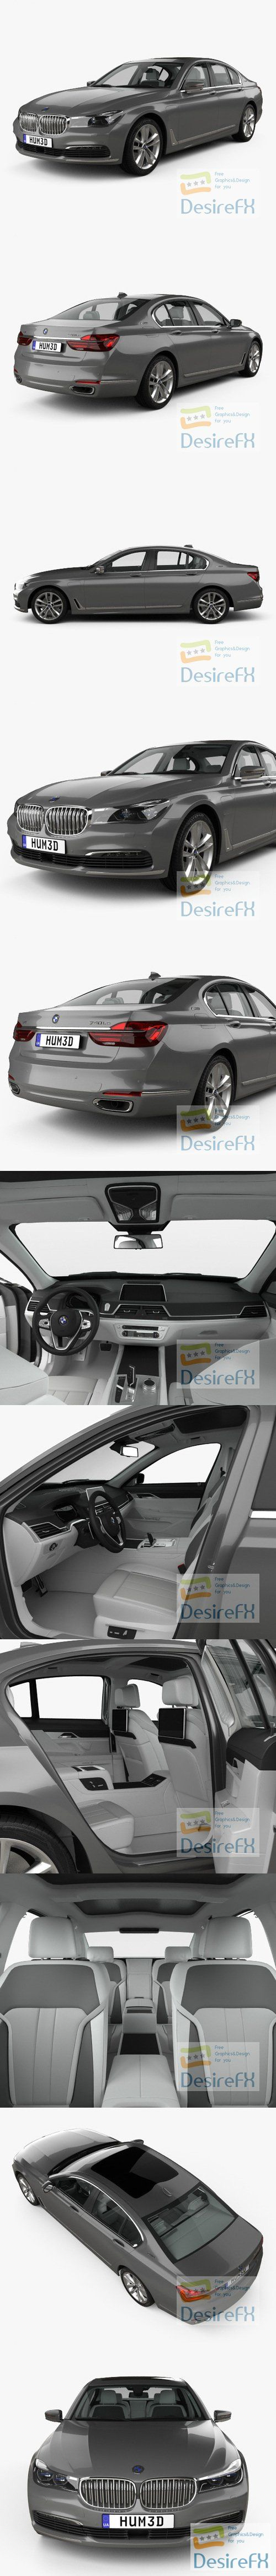 BMW 7 series Le with HQ interior 2015 3D Model